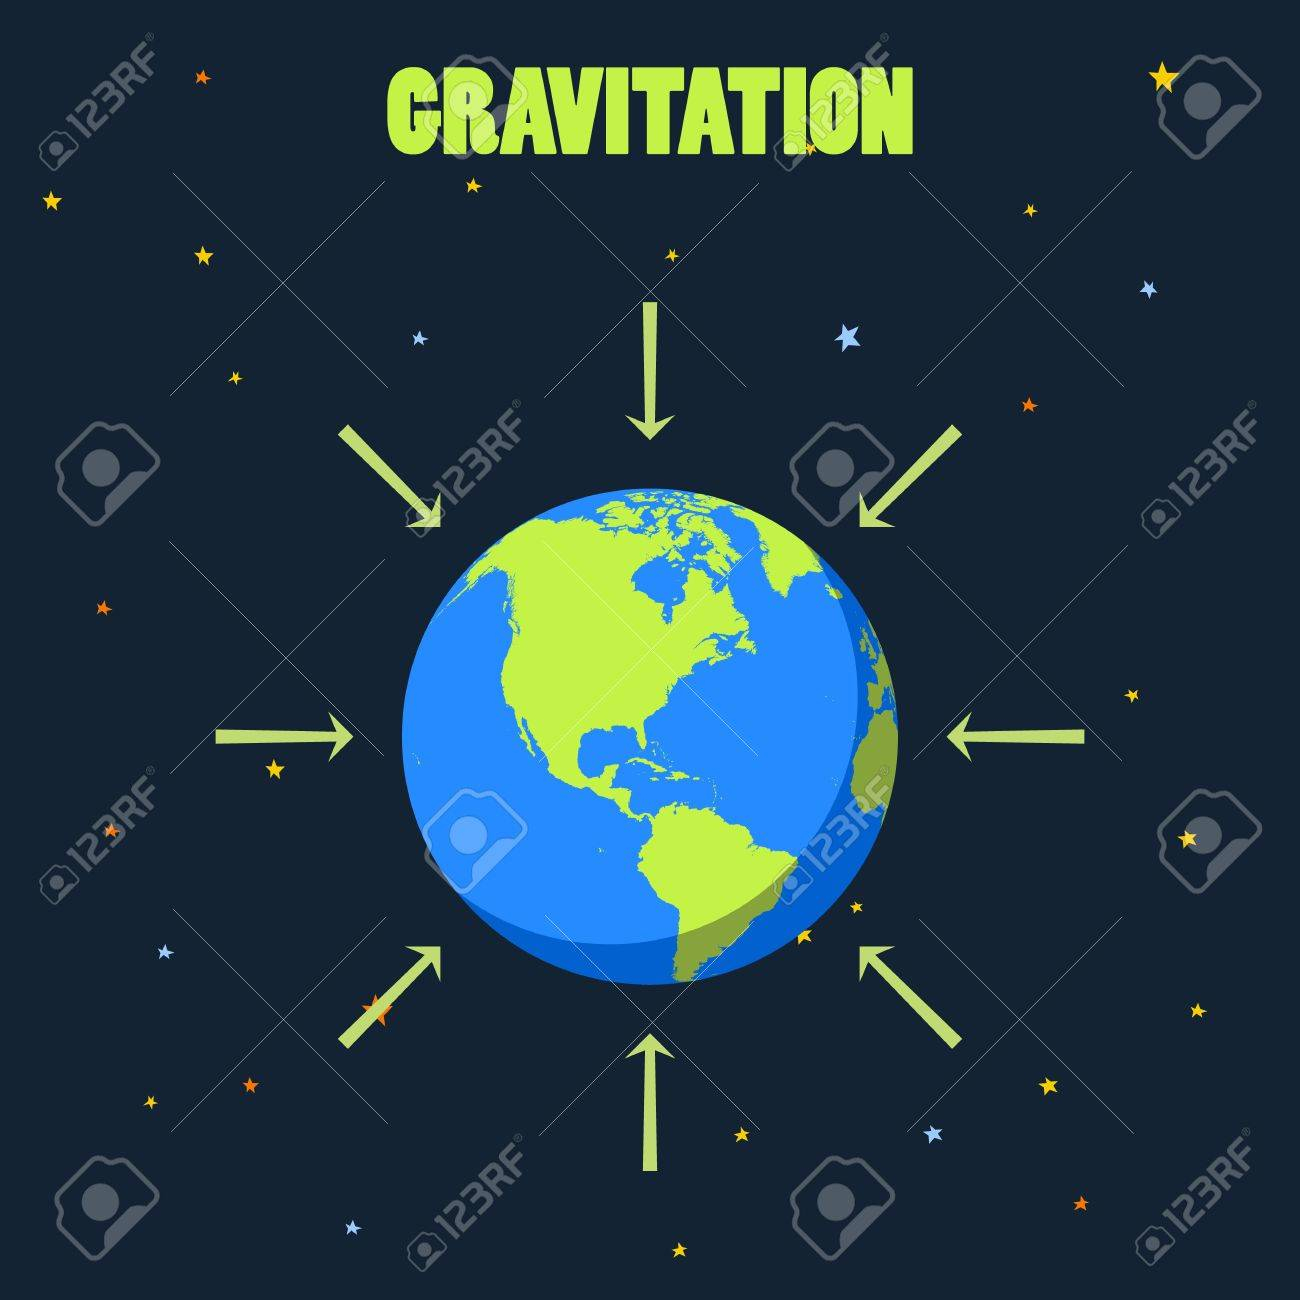 gravitation on planet earth concept illustration with planet and arrows  that shows how force of gravity acts on earth realistic vector of earth  earth in